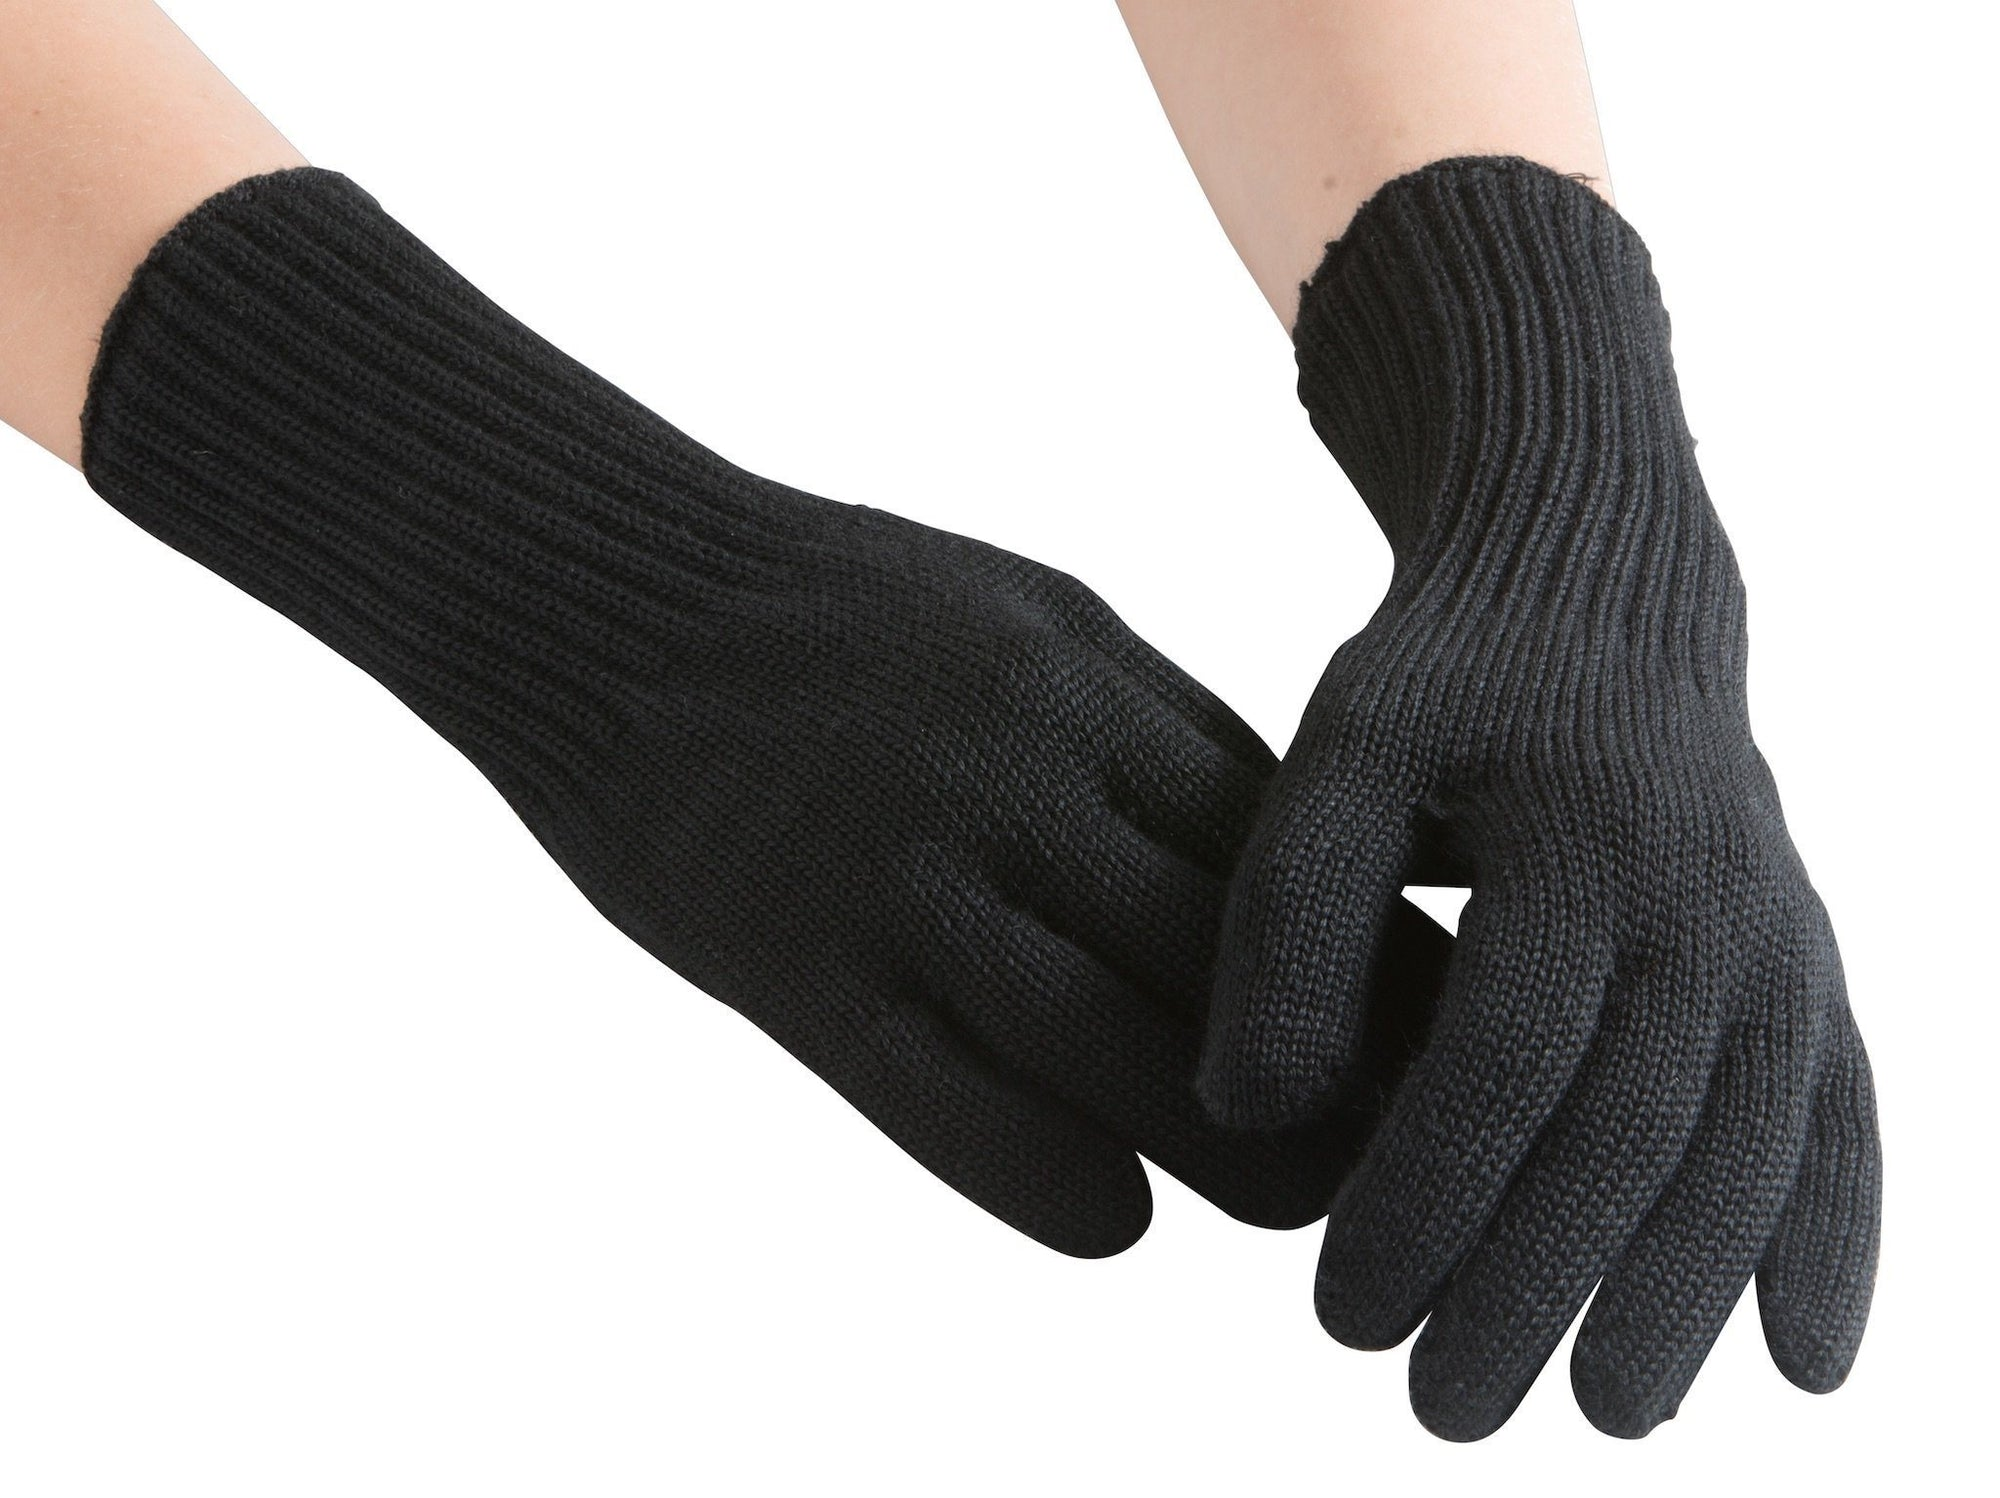 North Outdoor - Huurre Gloves - 100% Merino Wool - Made in Finland - Weekendbee - sustainable sportswear